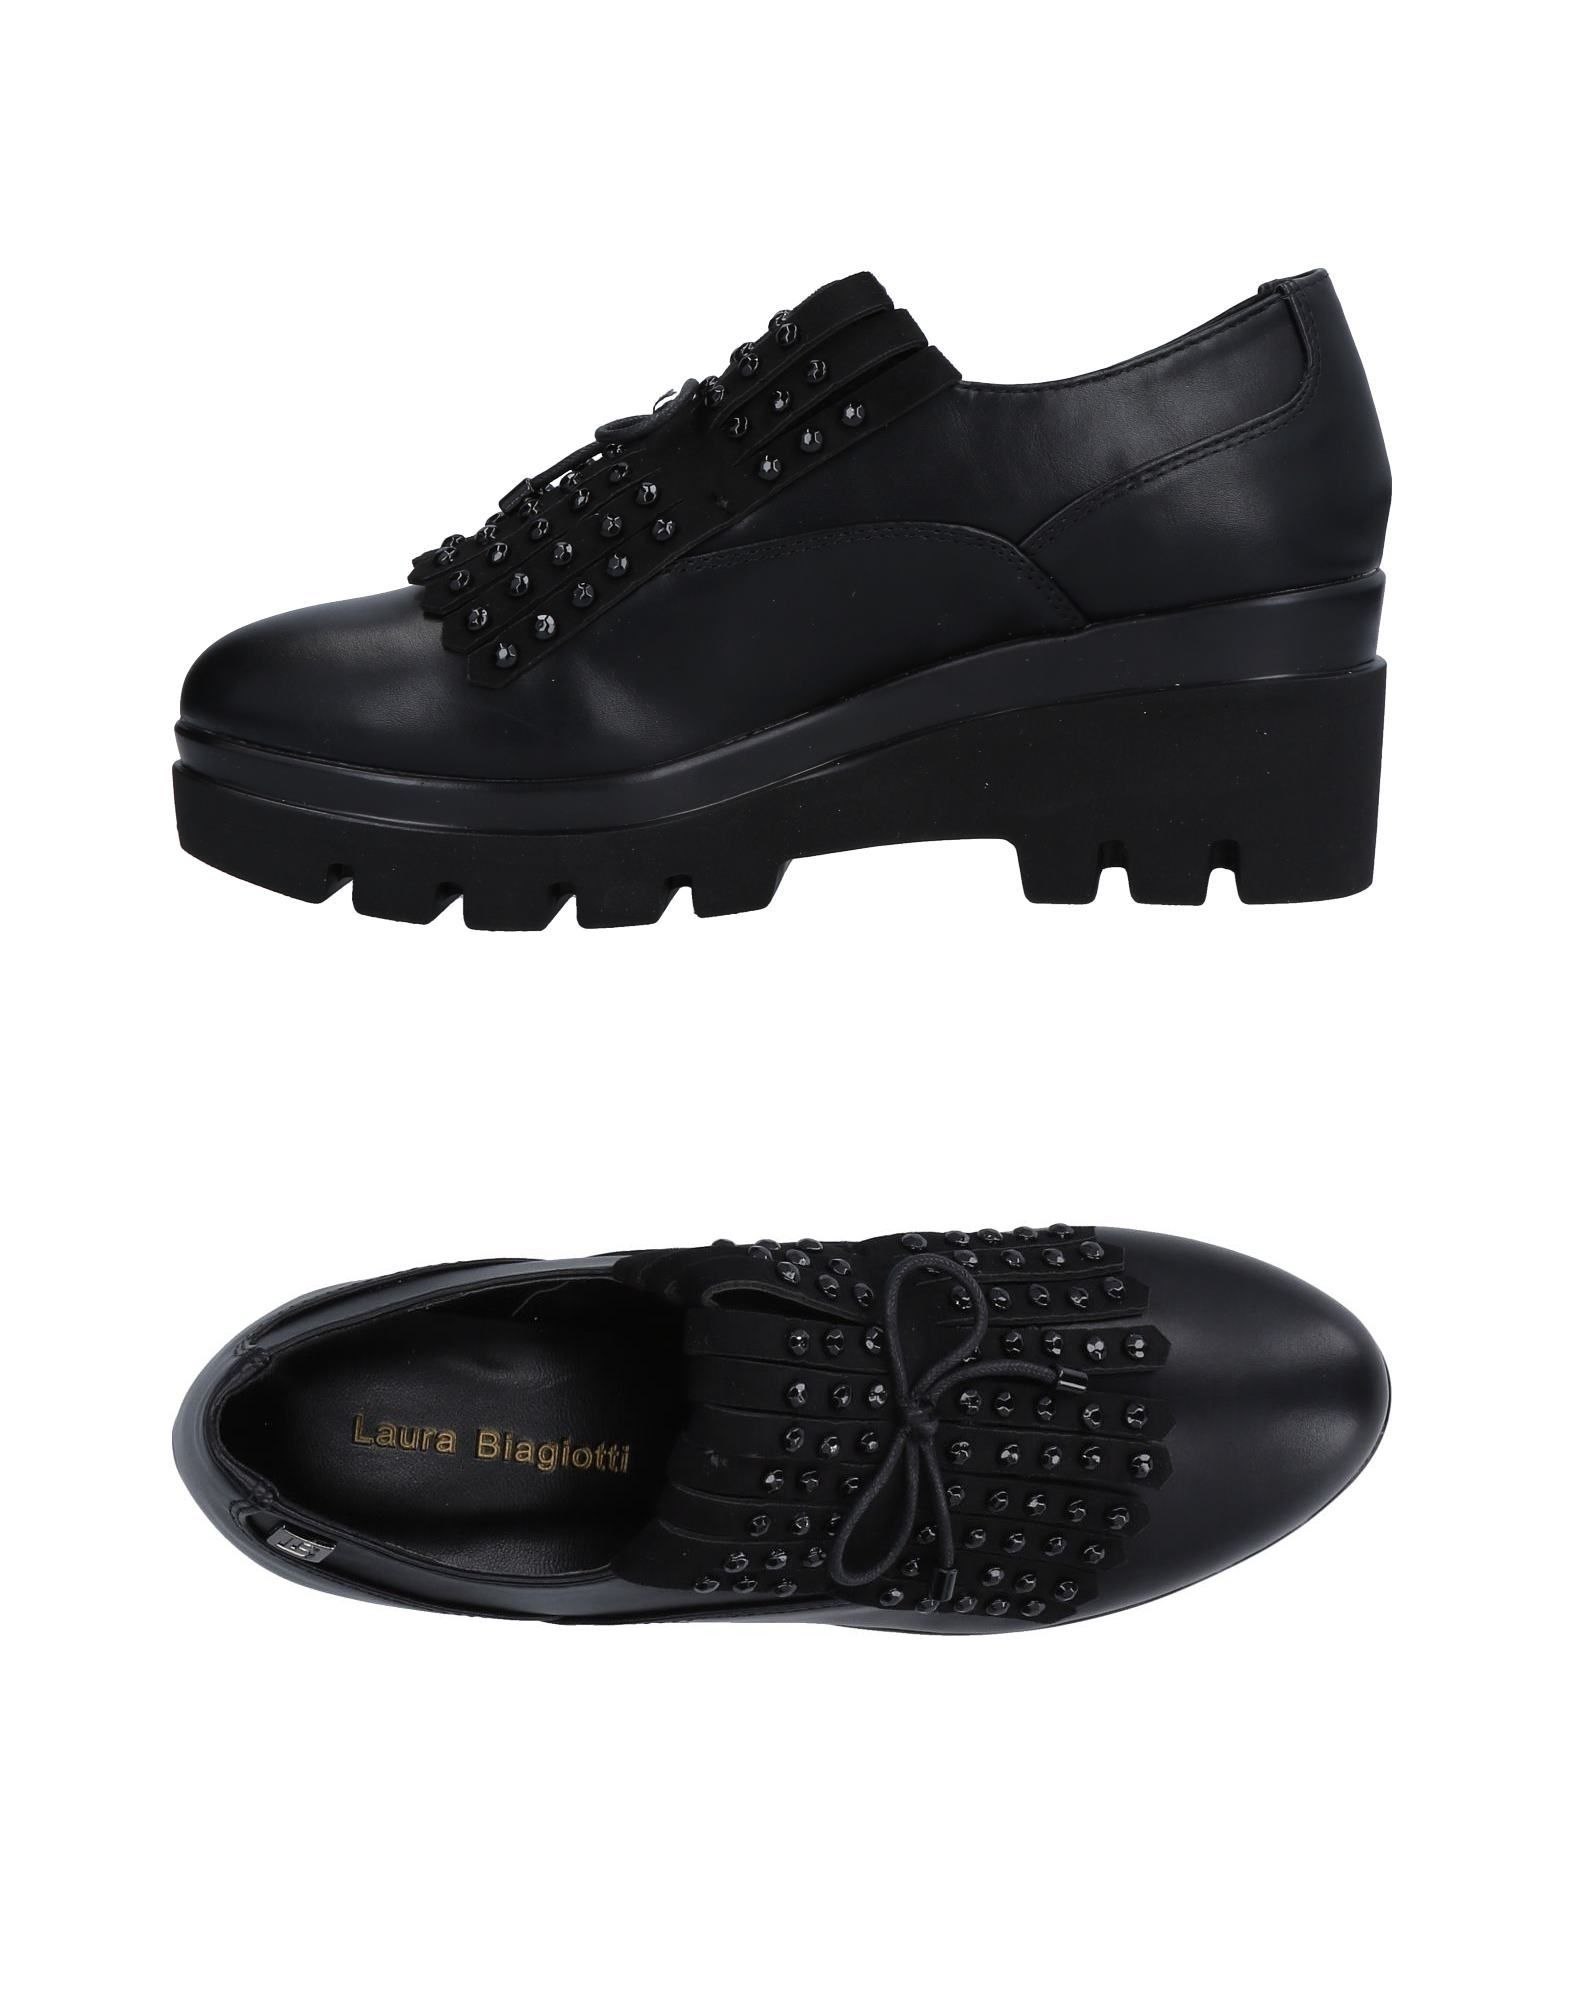 Laura Biagiotti Loafers Loafers - Women Laura Biagiotti Loafers Loafers online on  Canada - 11505761QX 0b877b